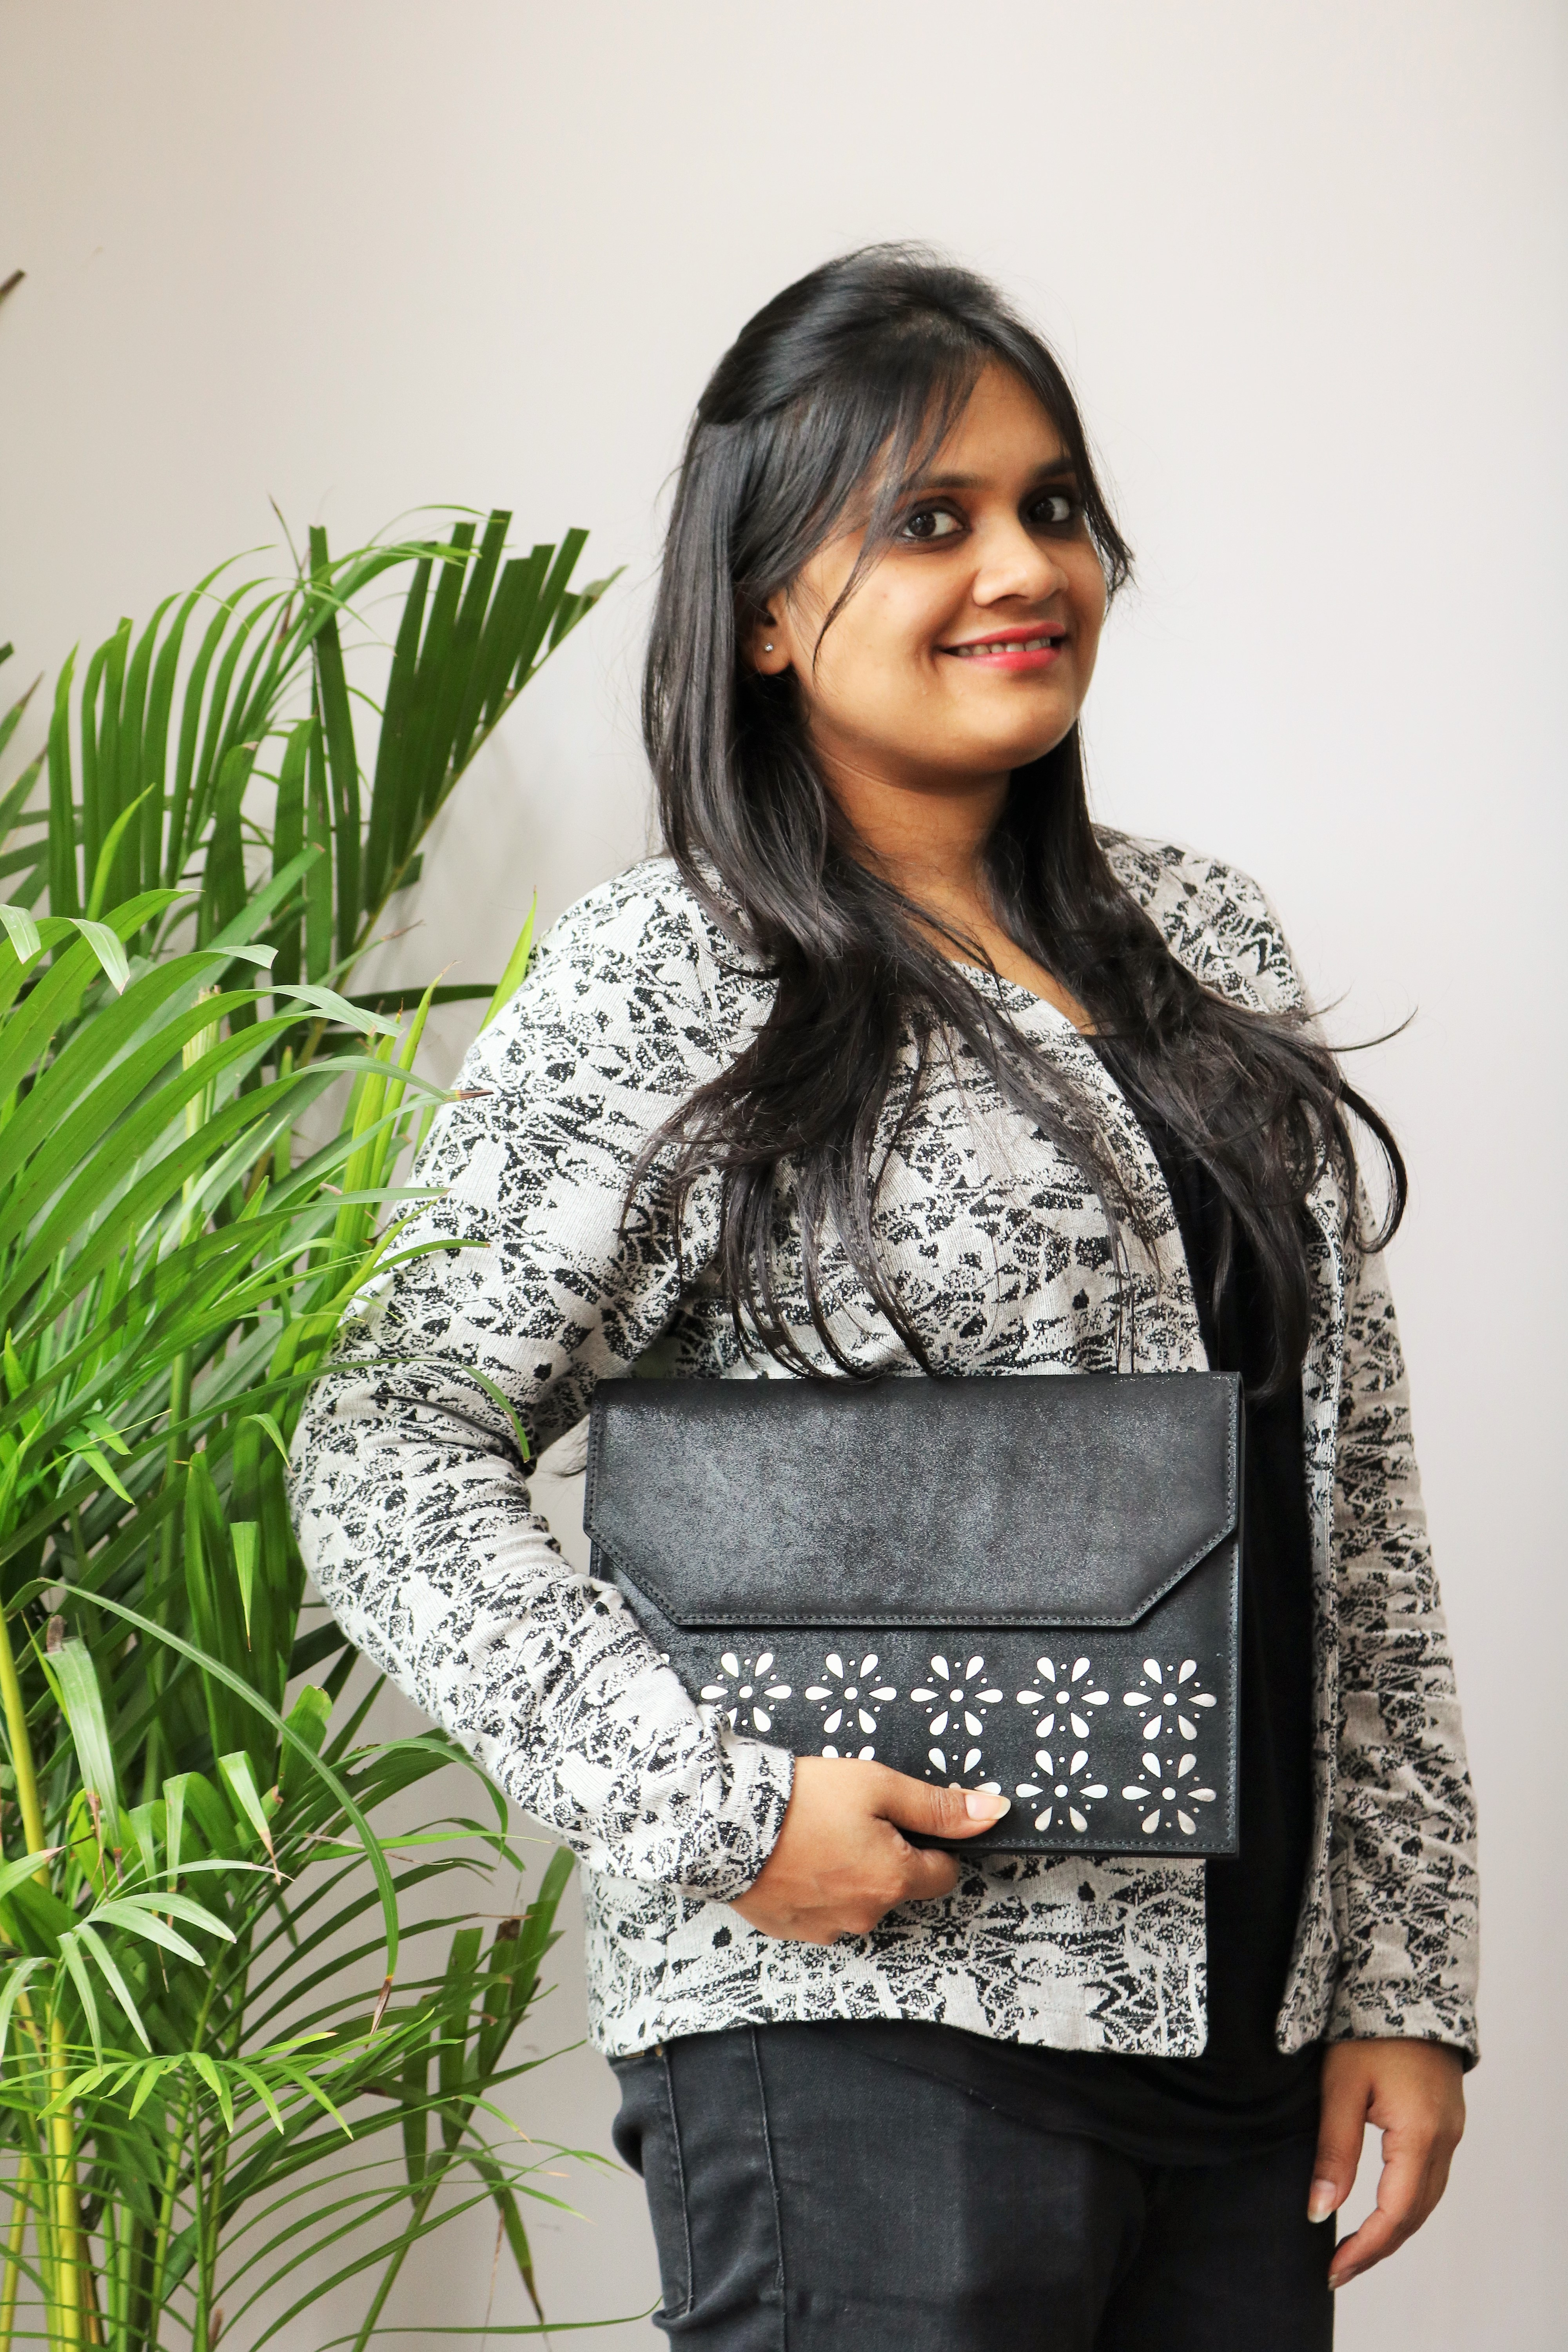 Ayushi with one of her bags